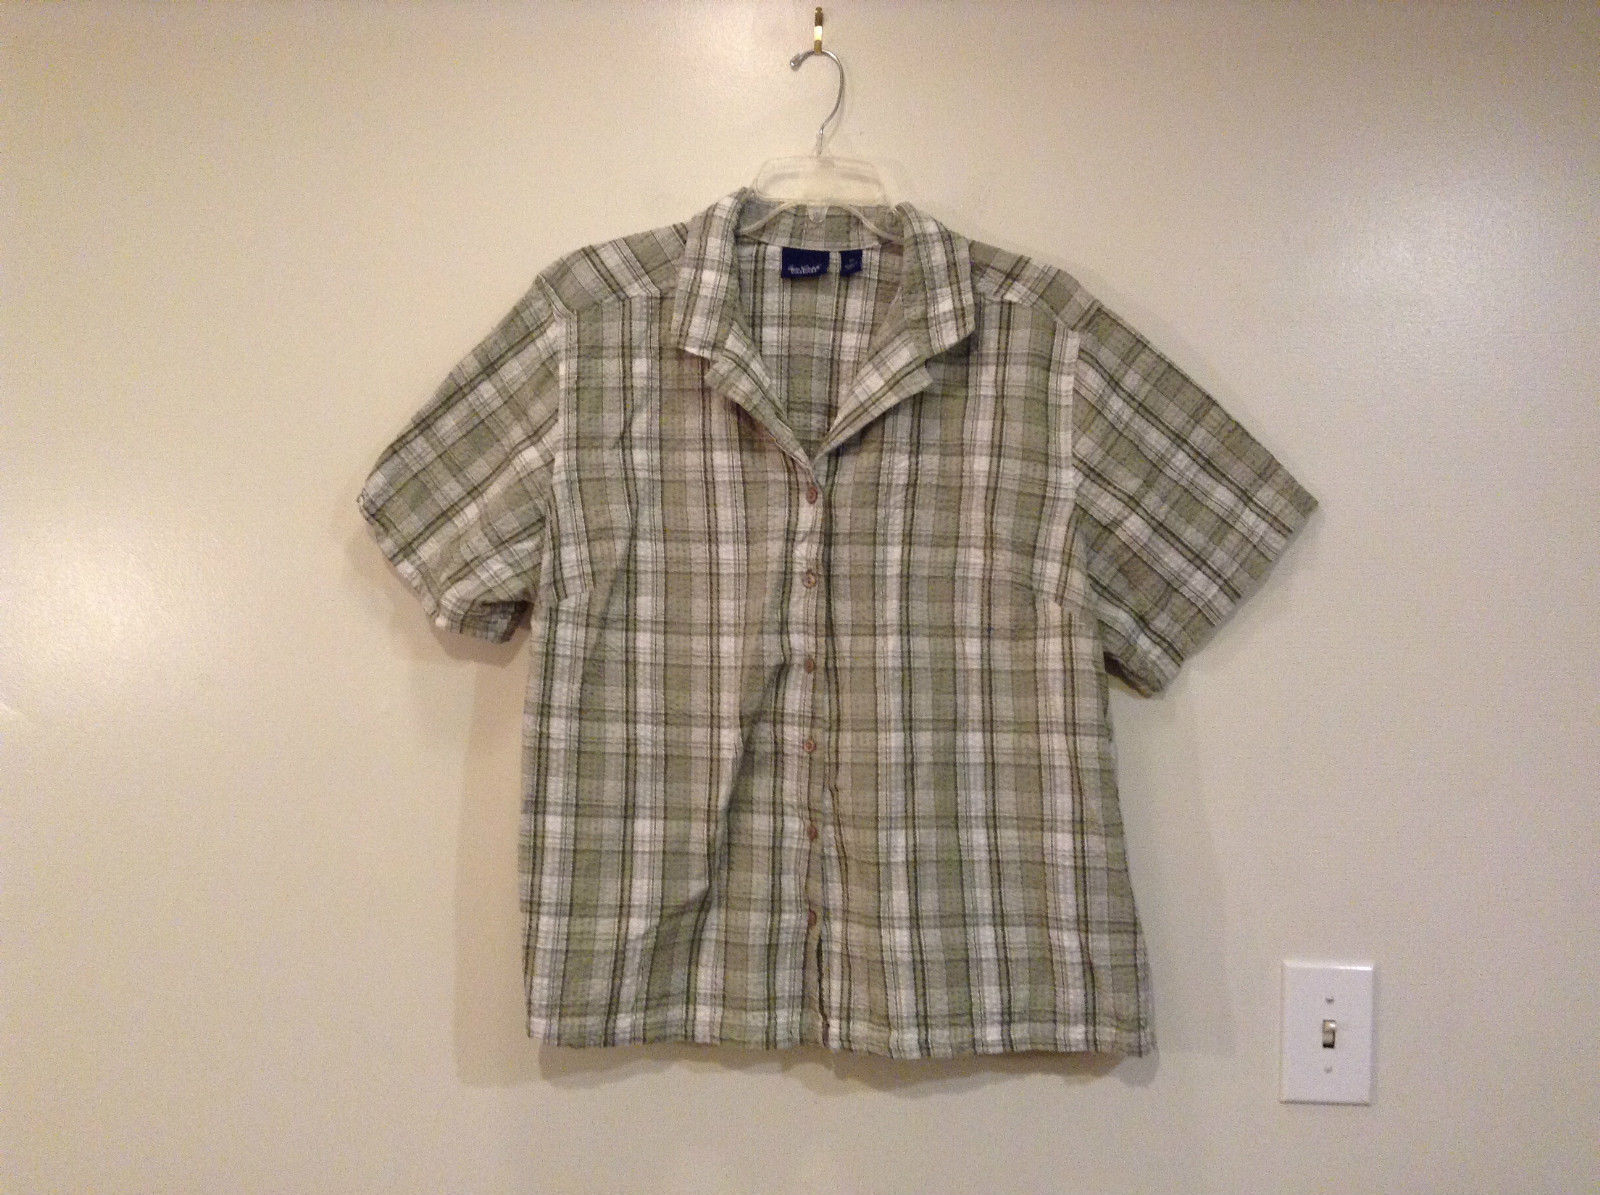 Size 3X Pale Green White Plaid V Neck Button Up Top Gloria Vanderbilt Casual